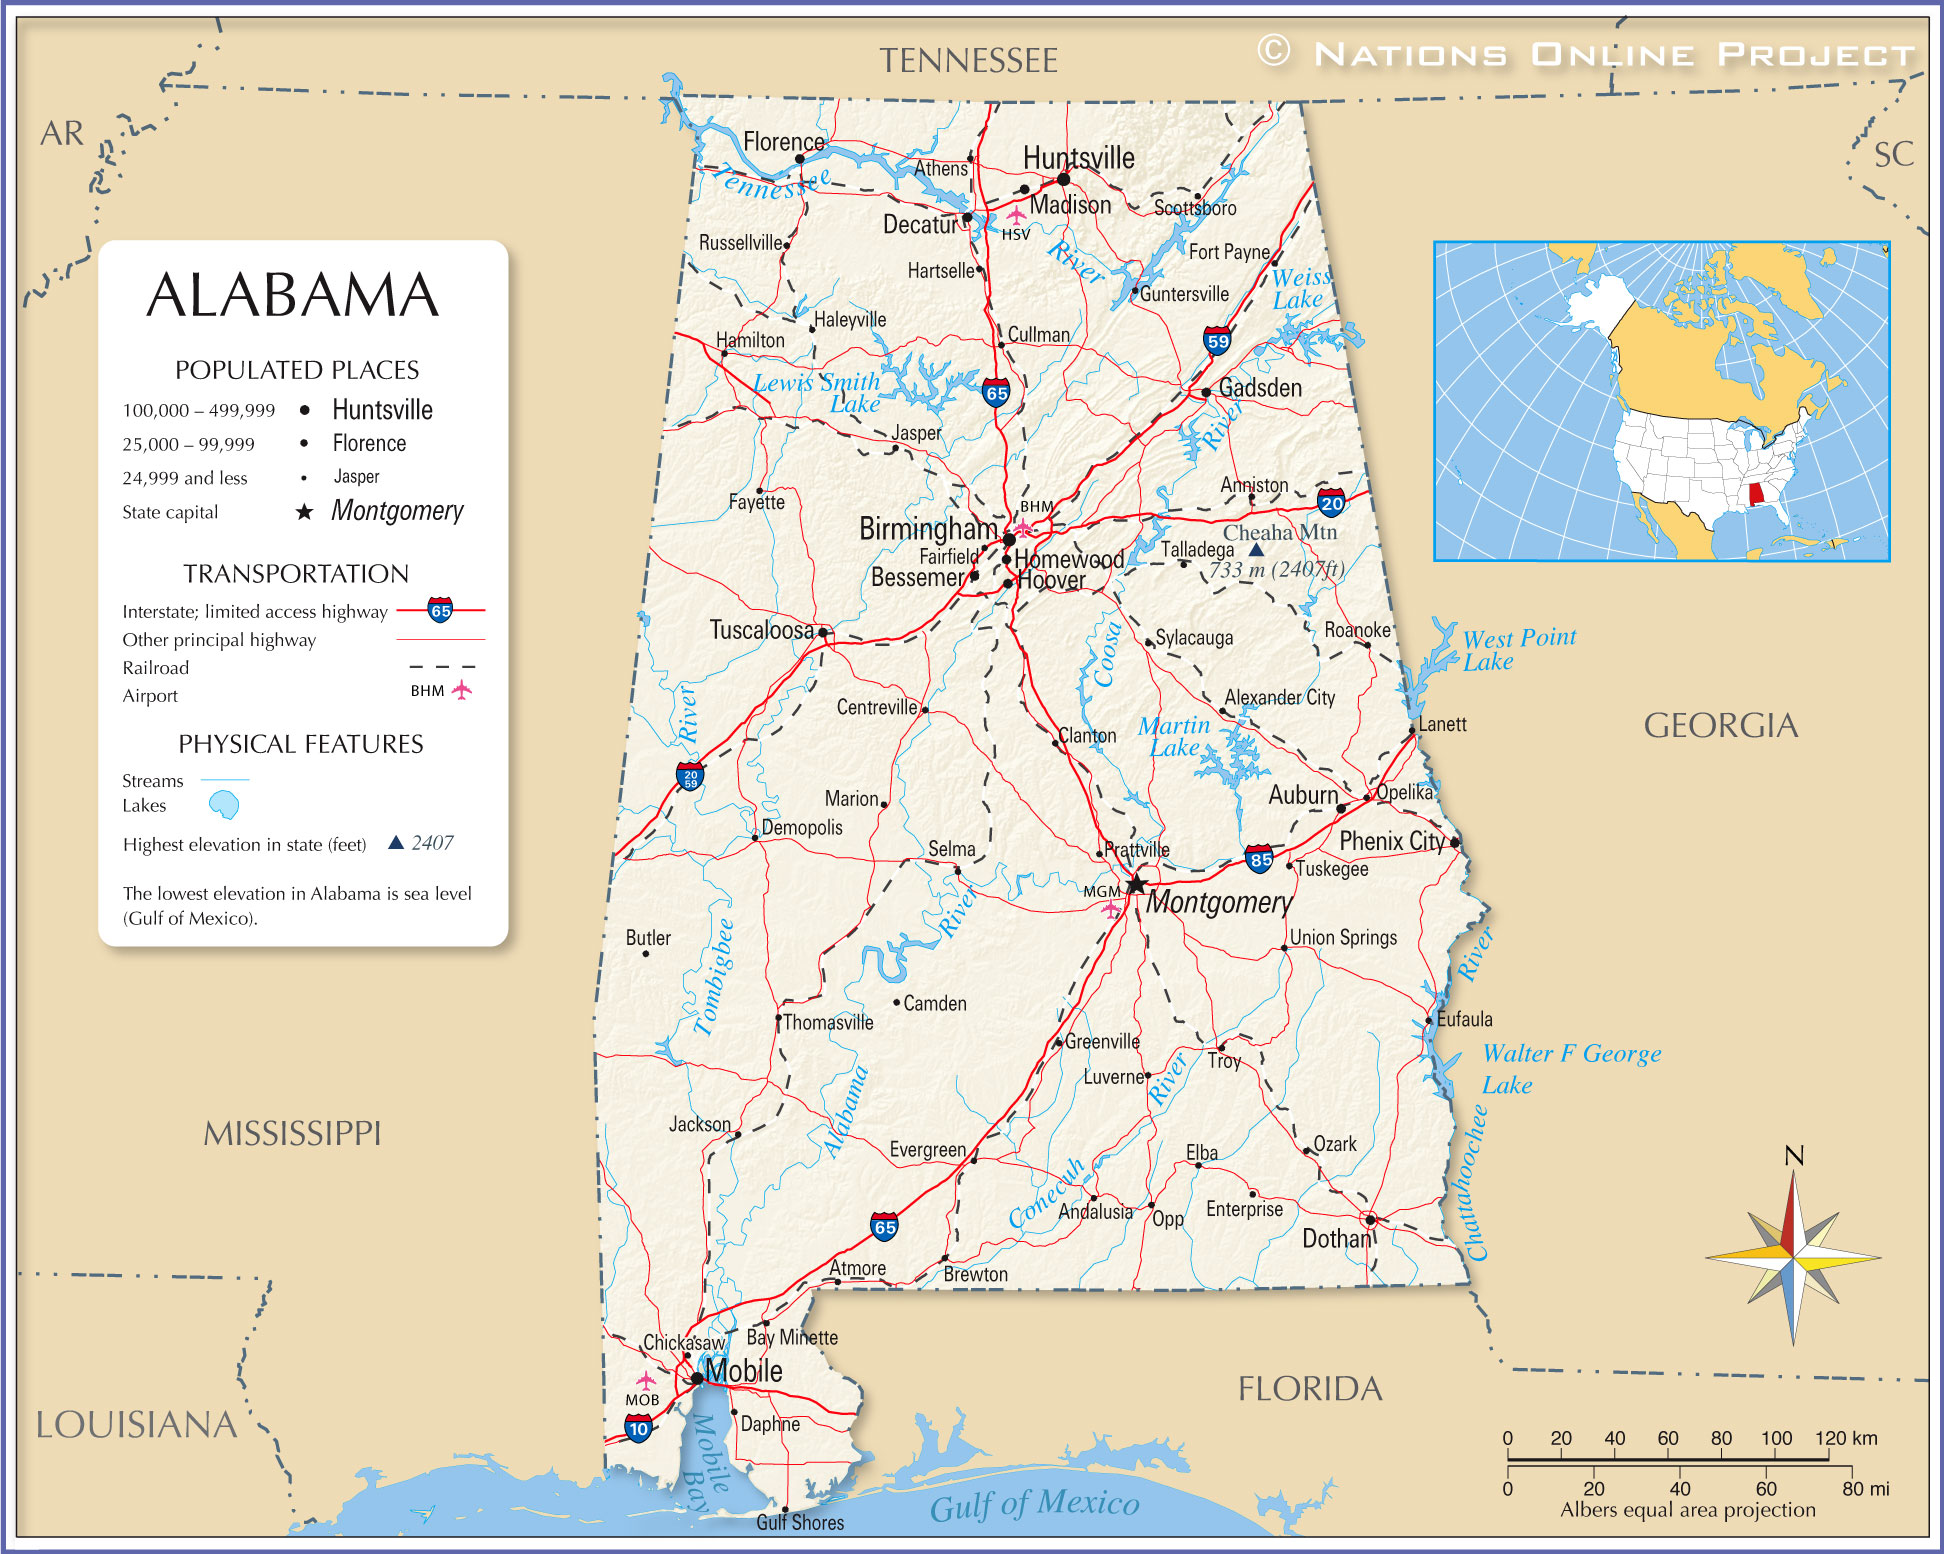 Reference Map of Alabama, USA - Nations Online Project